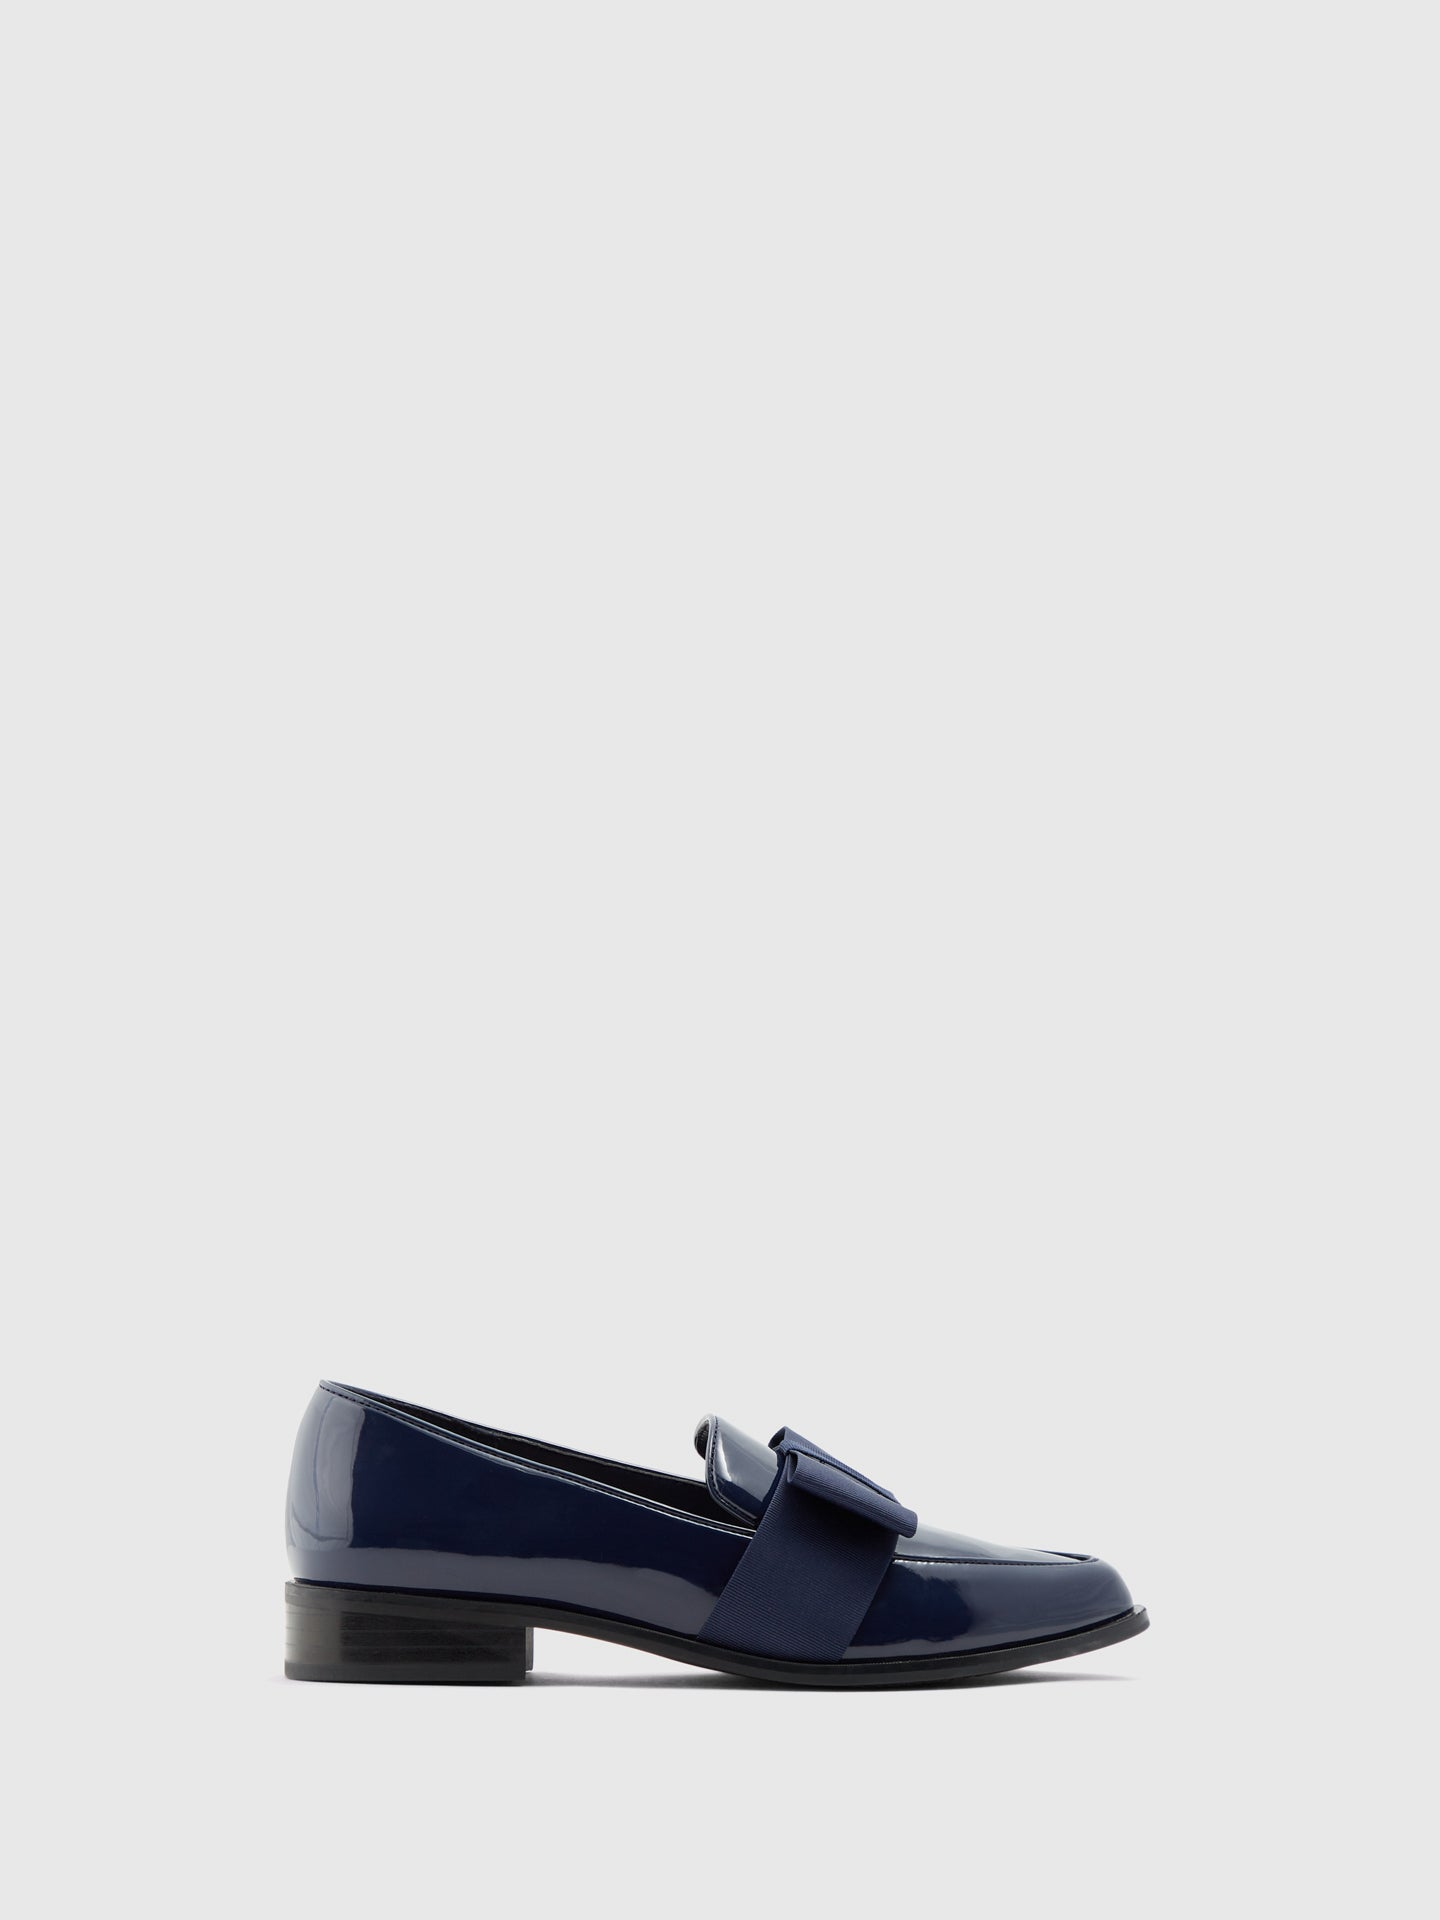 Aldo Blue Pointed Toe Shoes